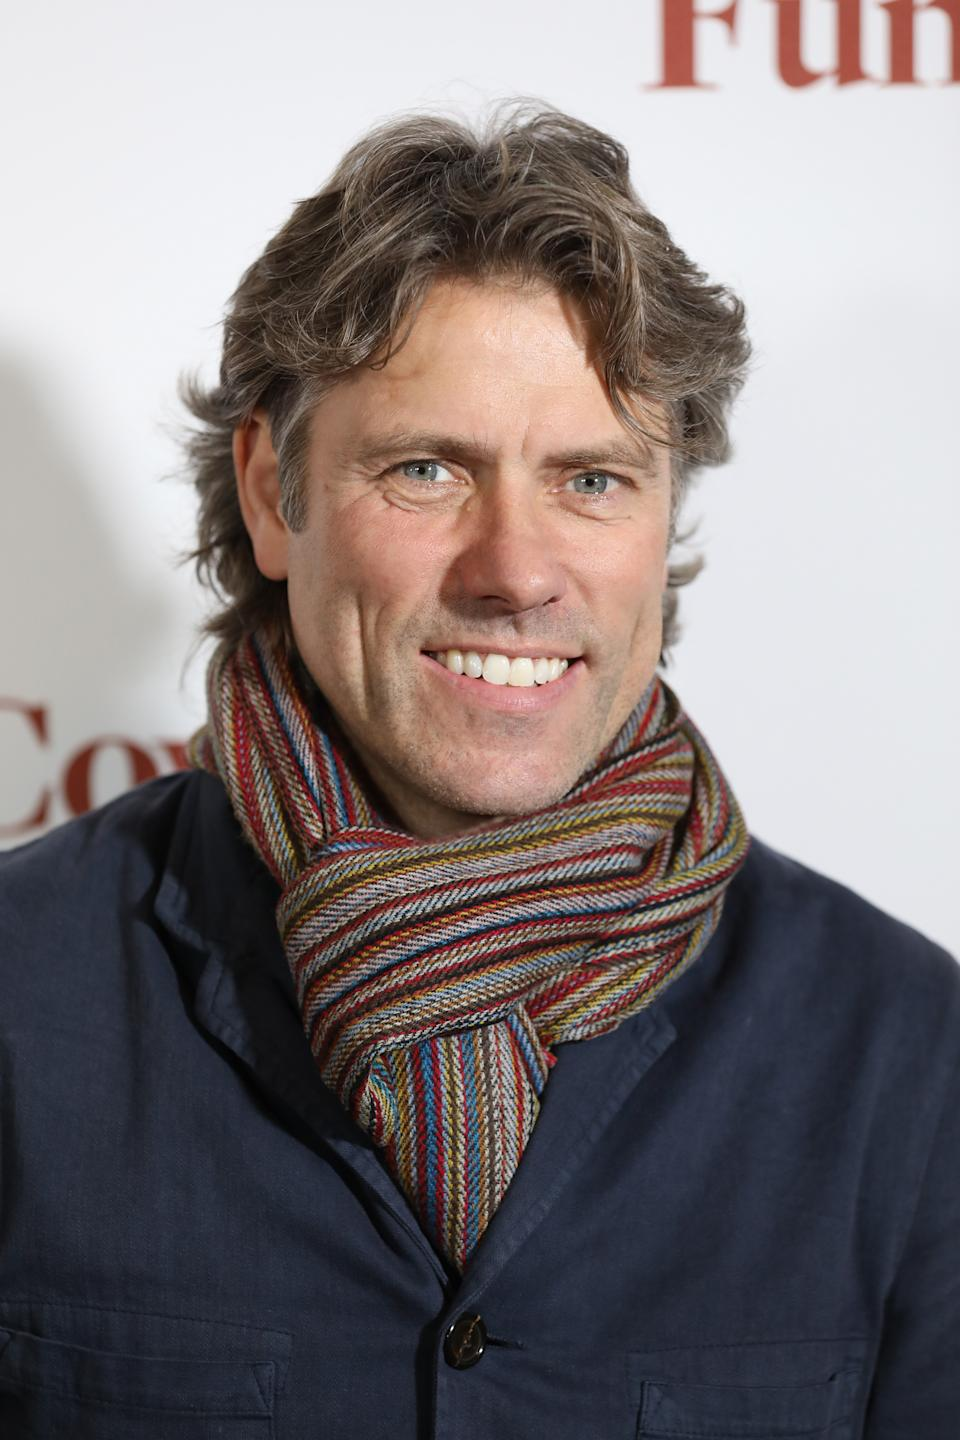 """Comedian and actor John Bishop attends the World Premiere of """"Funny Cow"""" during the 61st BFI London Film Festival on October 9, 2017 in London, England.  (Photo by Tim P. Whitby/Getty Images for BFI)"""